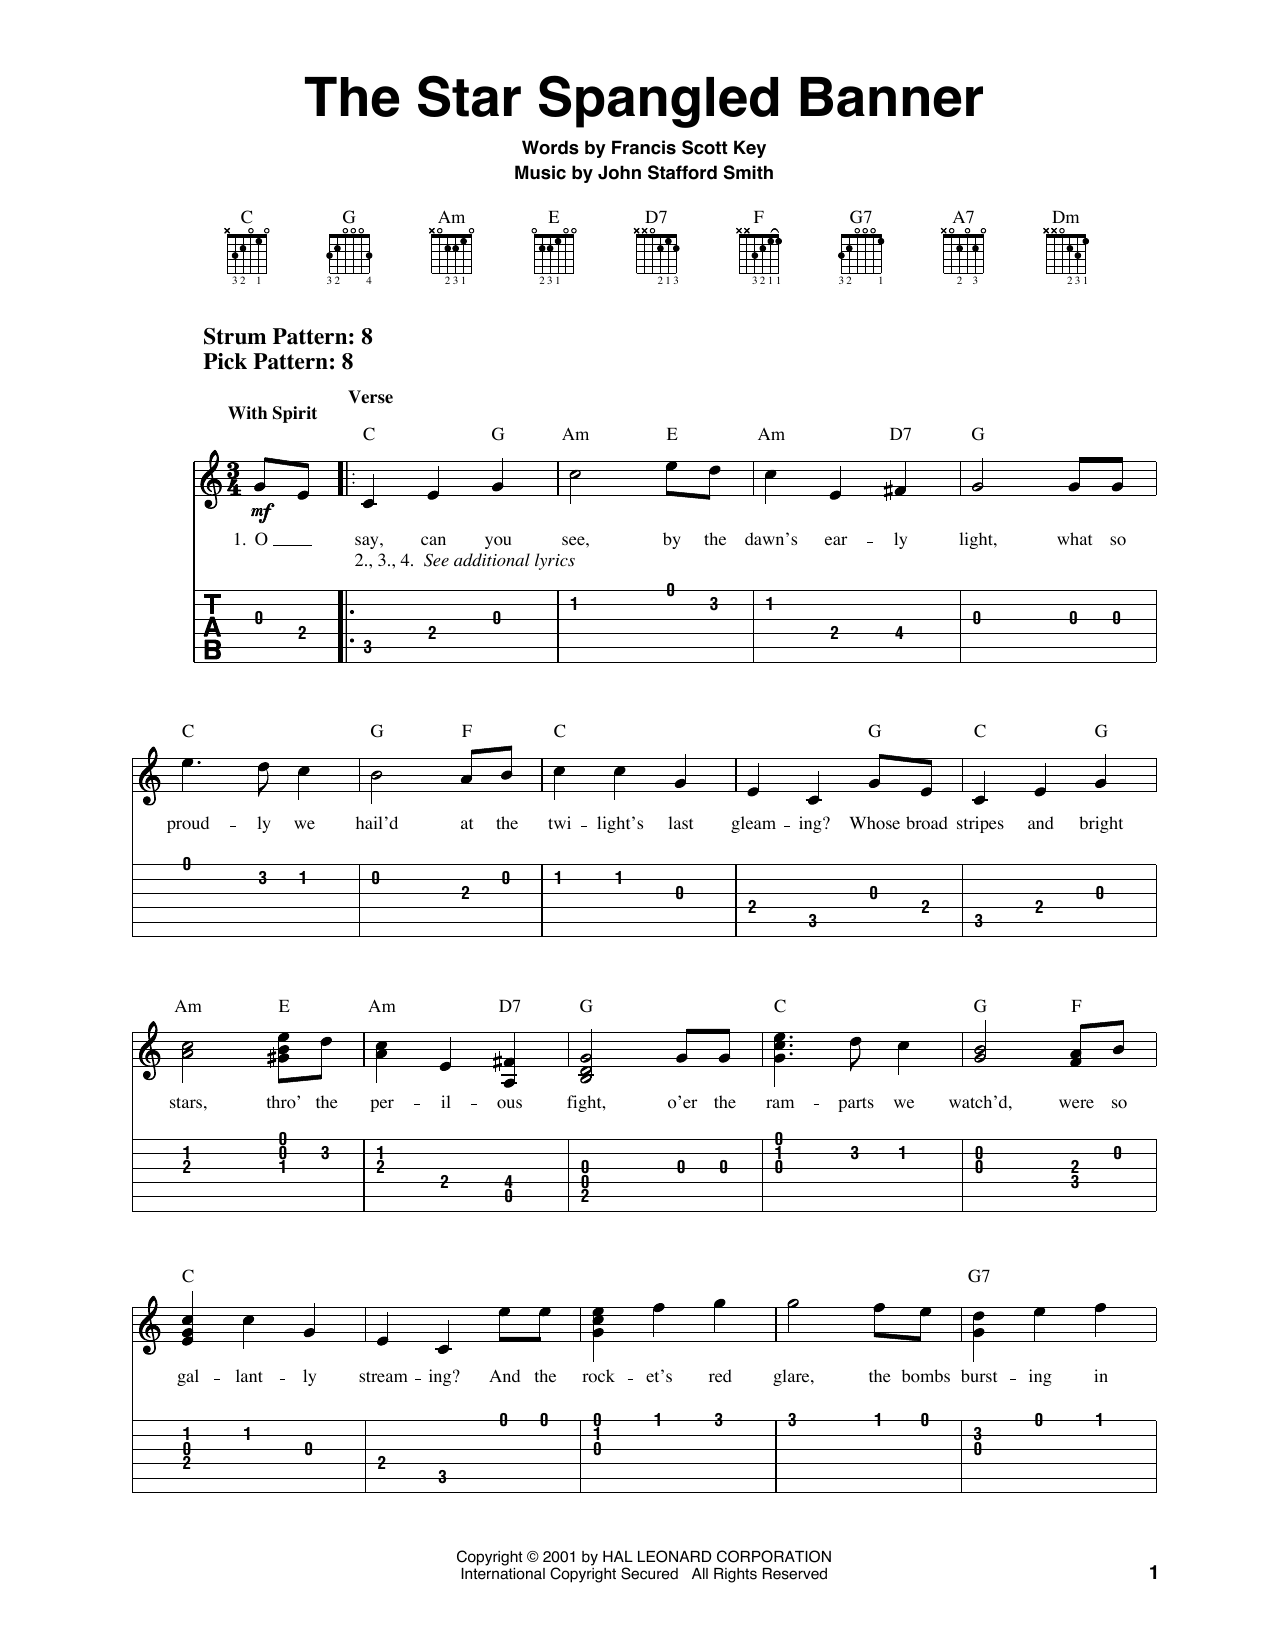 image about Star Spangled Banner Lyrics Printable named Francis Scott Top secret The Star Spangled Banner Sheet Tunes Notes, Chords  Obtain Printable Very simple Guitar Tab - SKU: 159487